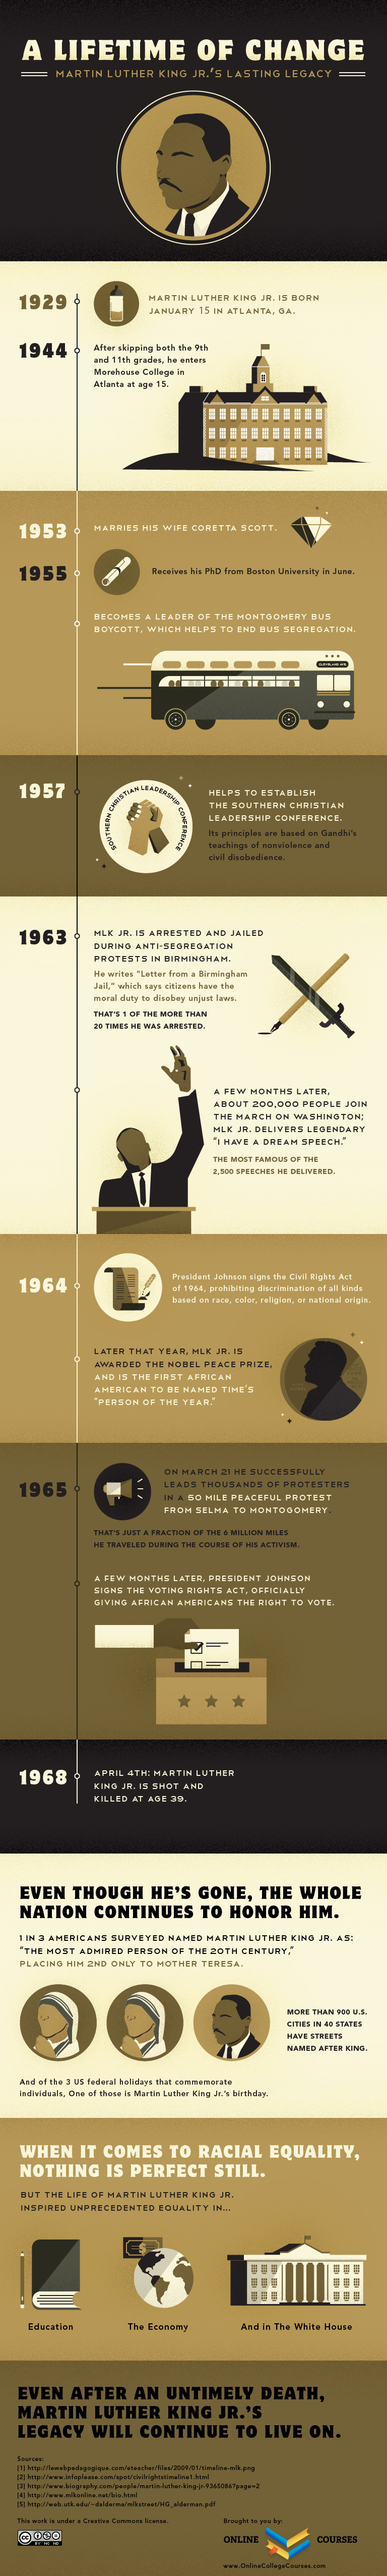 Martin Luther King Jr.'s Lasting Legacy